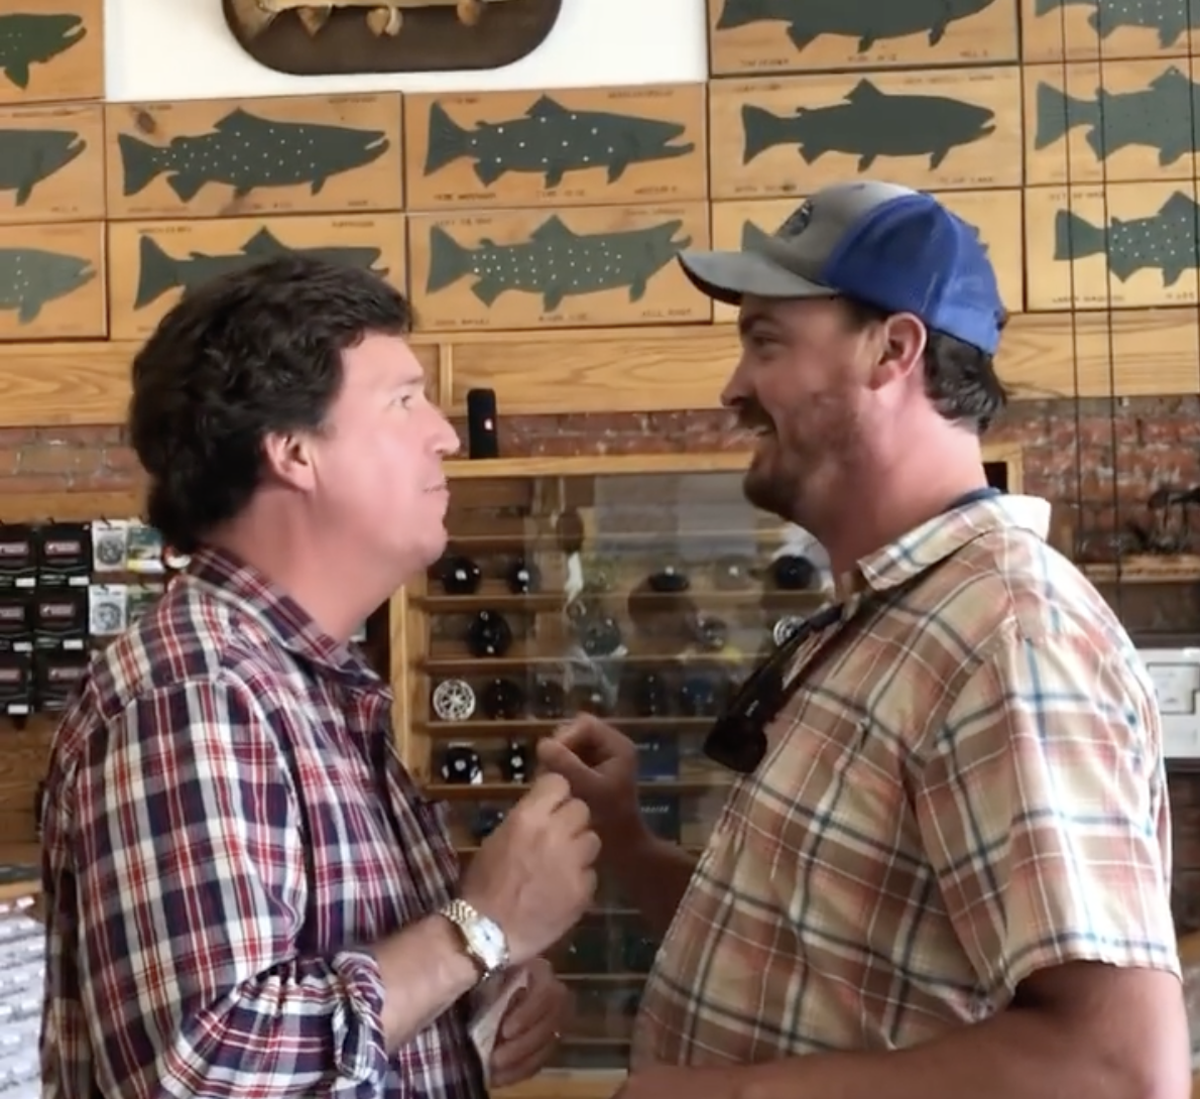 Man confronts Tucker Carlson in Montana fishing store: 'You are the worst human being'